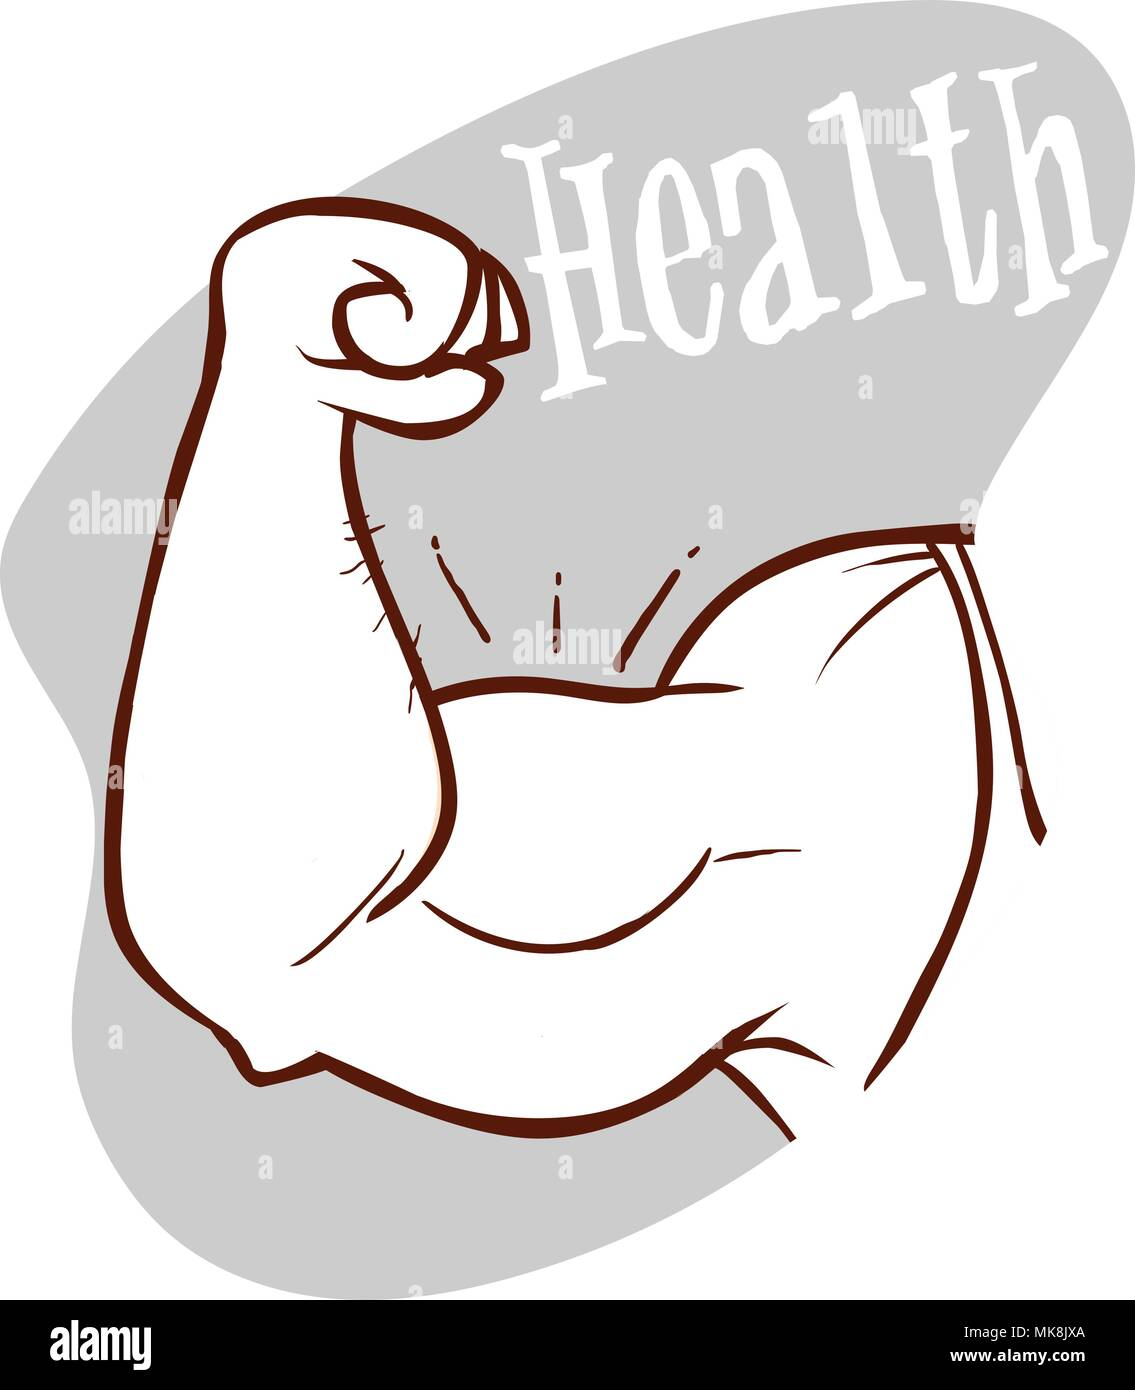 Muscle arms, strong bicep vector illustration - Stock Image